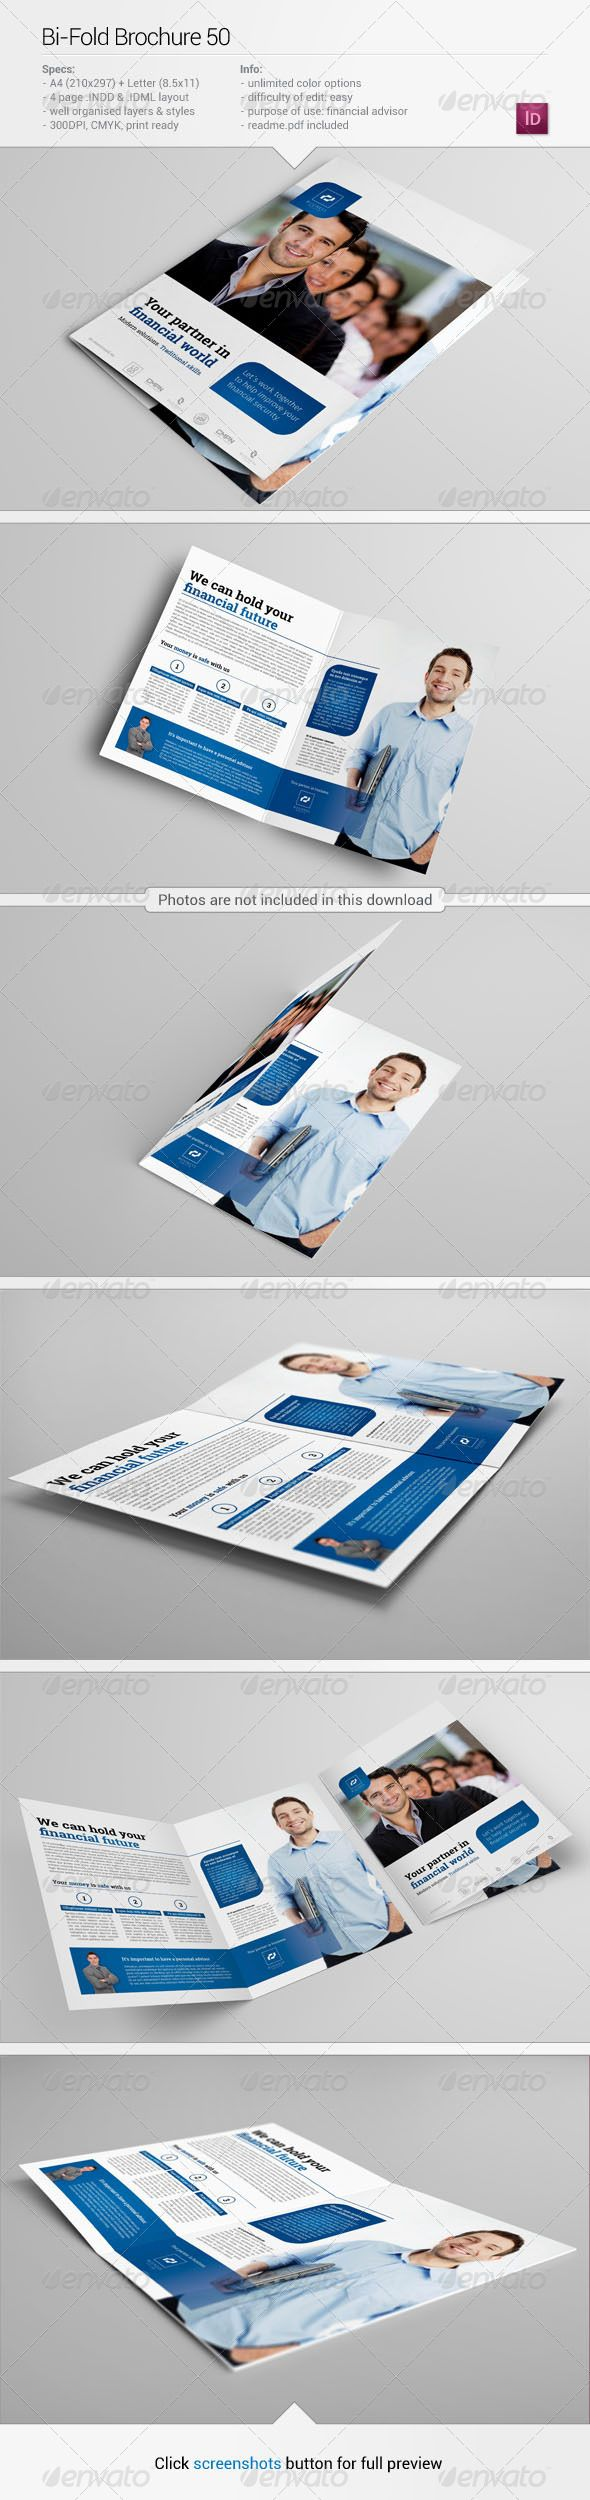 letter of resignation free template%0A BiFold Brochure